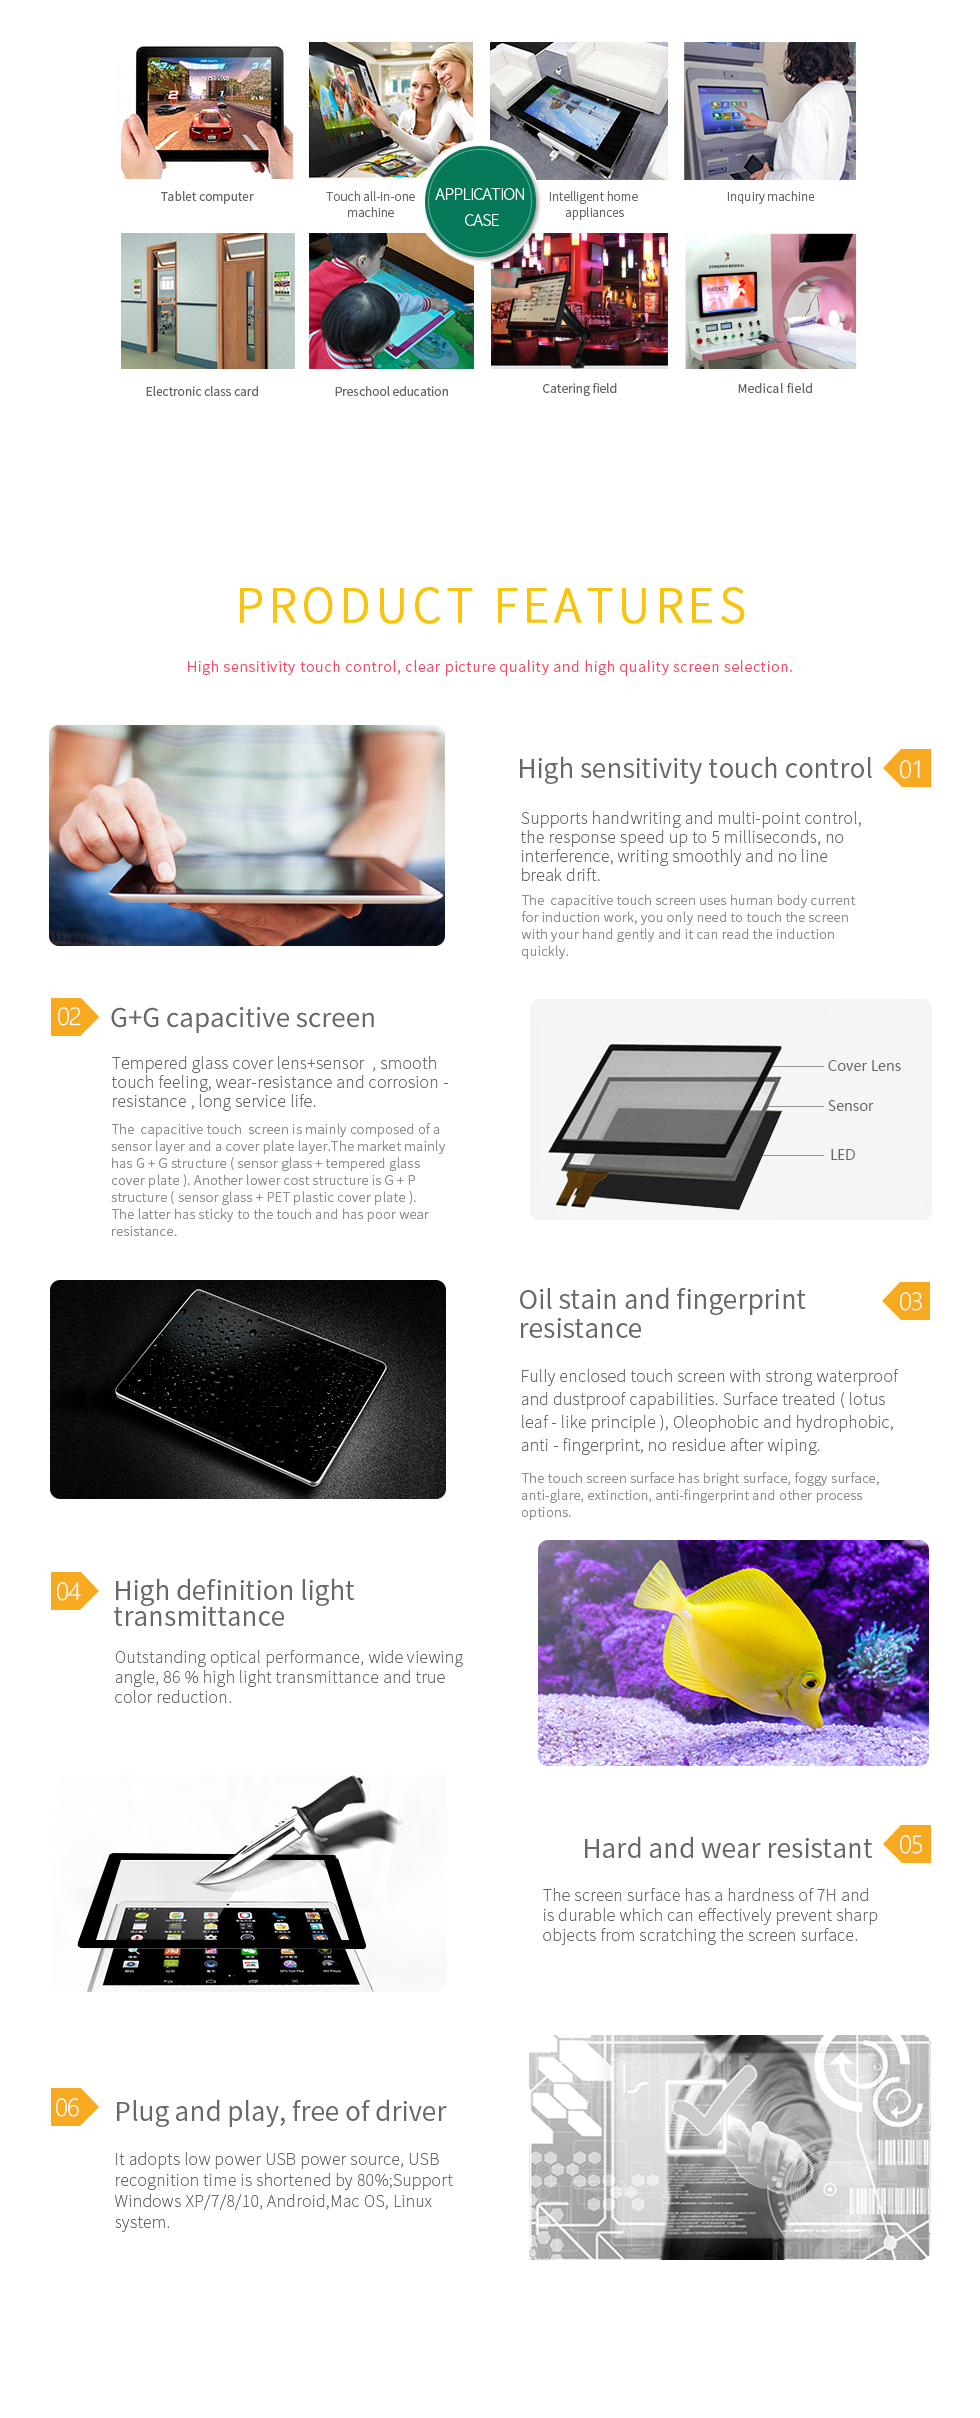 [TMDtouch]Cheap 21.5 inch Capacitive Touch Screen,Capacitive Touch Glass+Glass Structure,Capacitive Touch Screen Panel